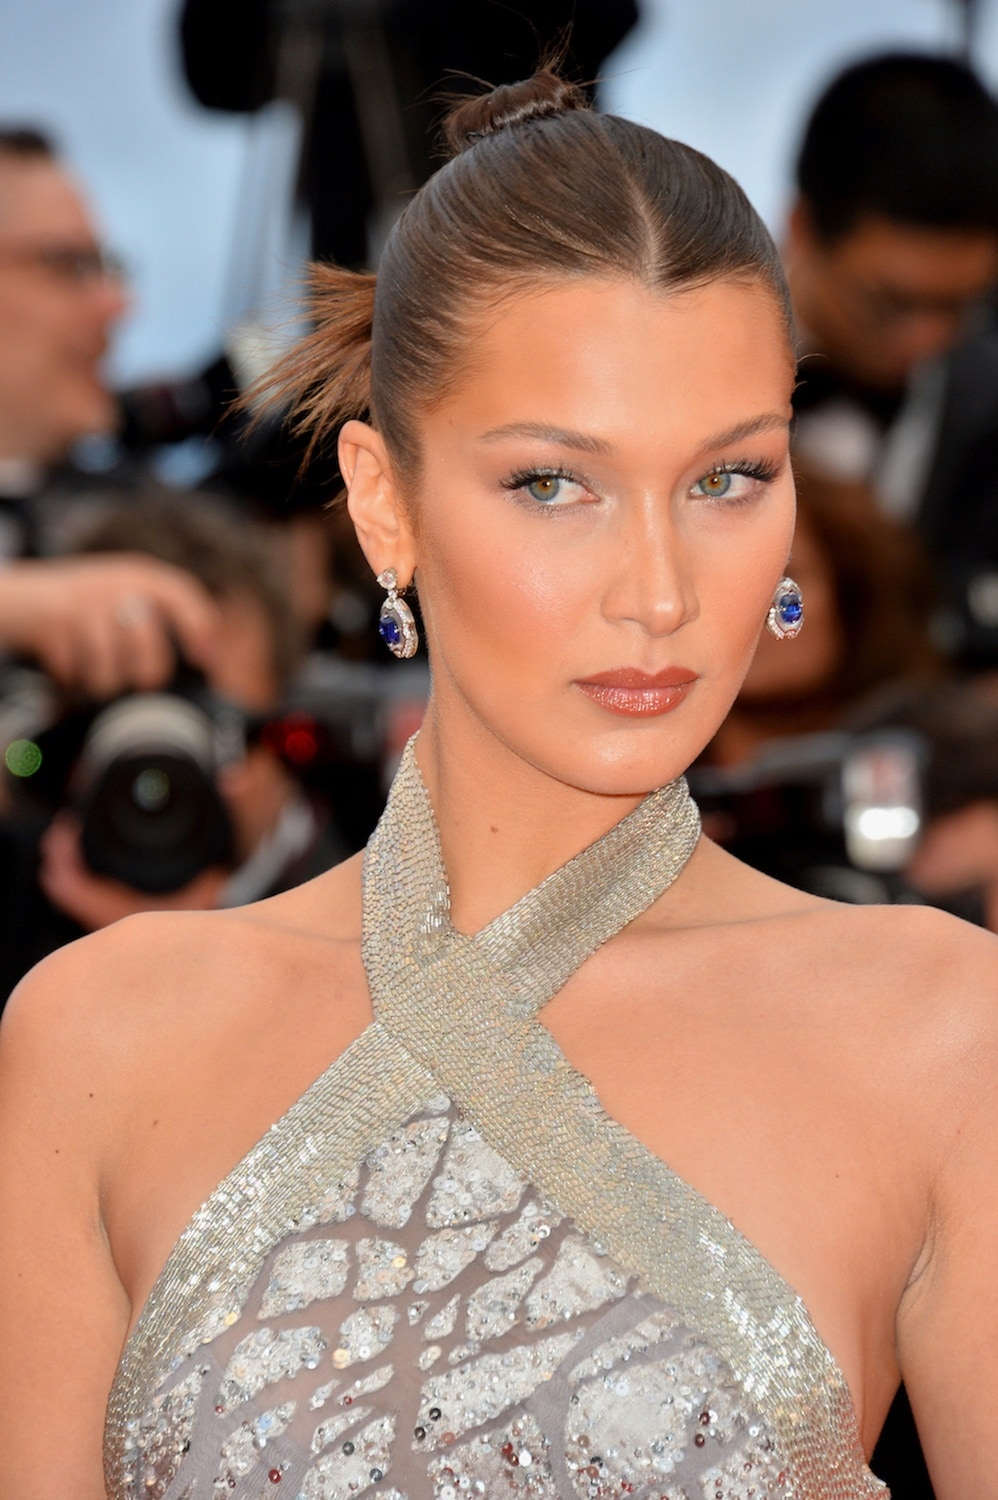 Gaya rambut sleek top knot dengan gaya messy Bella Hadid Cannes Film Festival 2018.